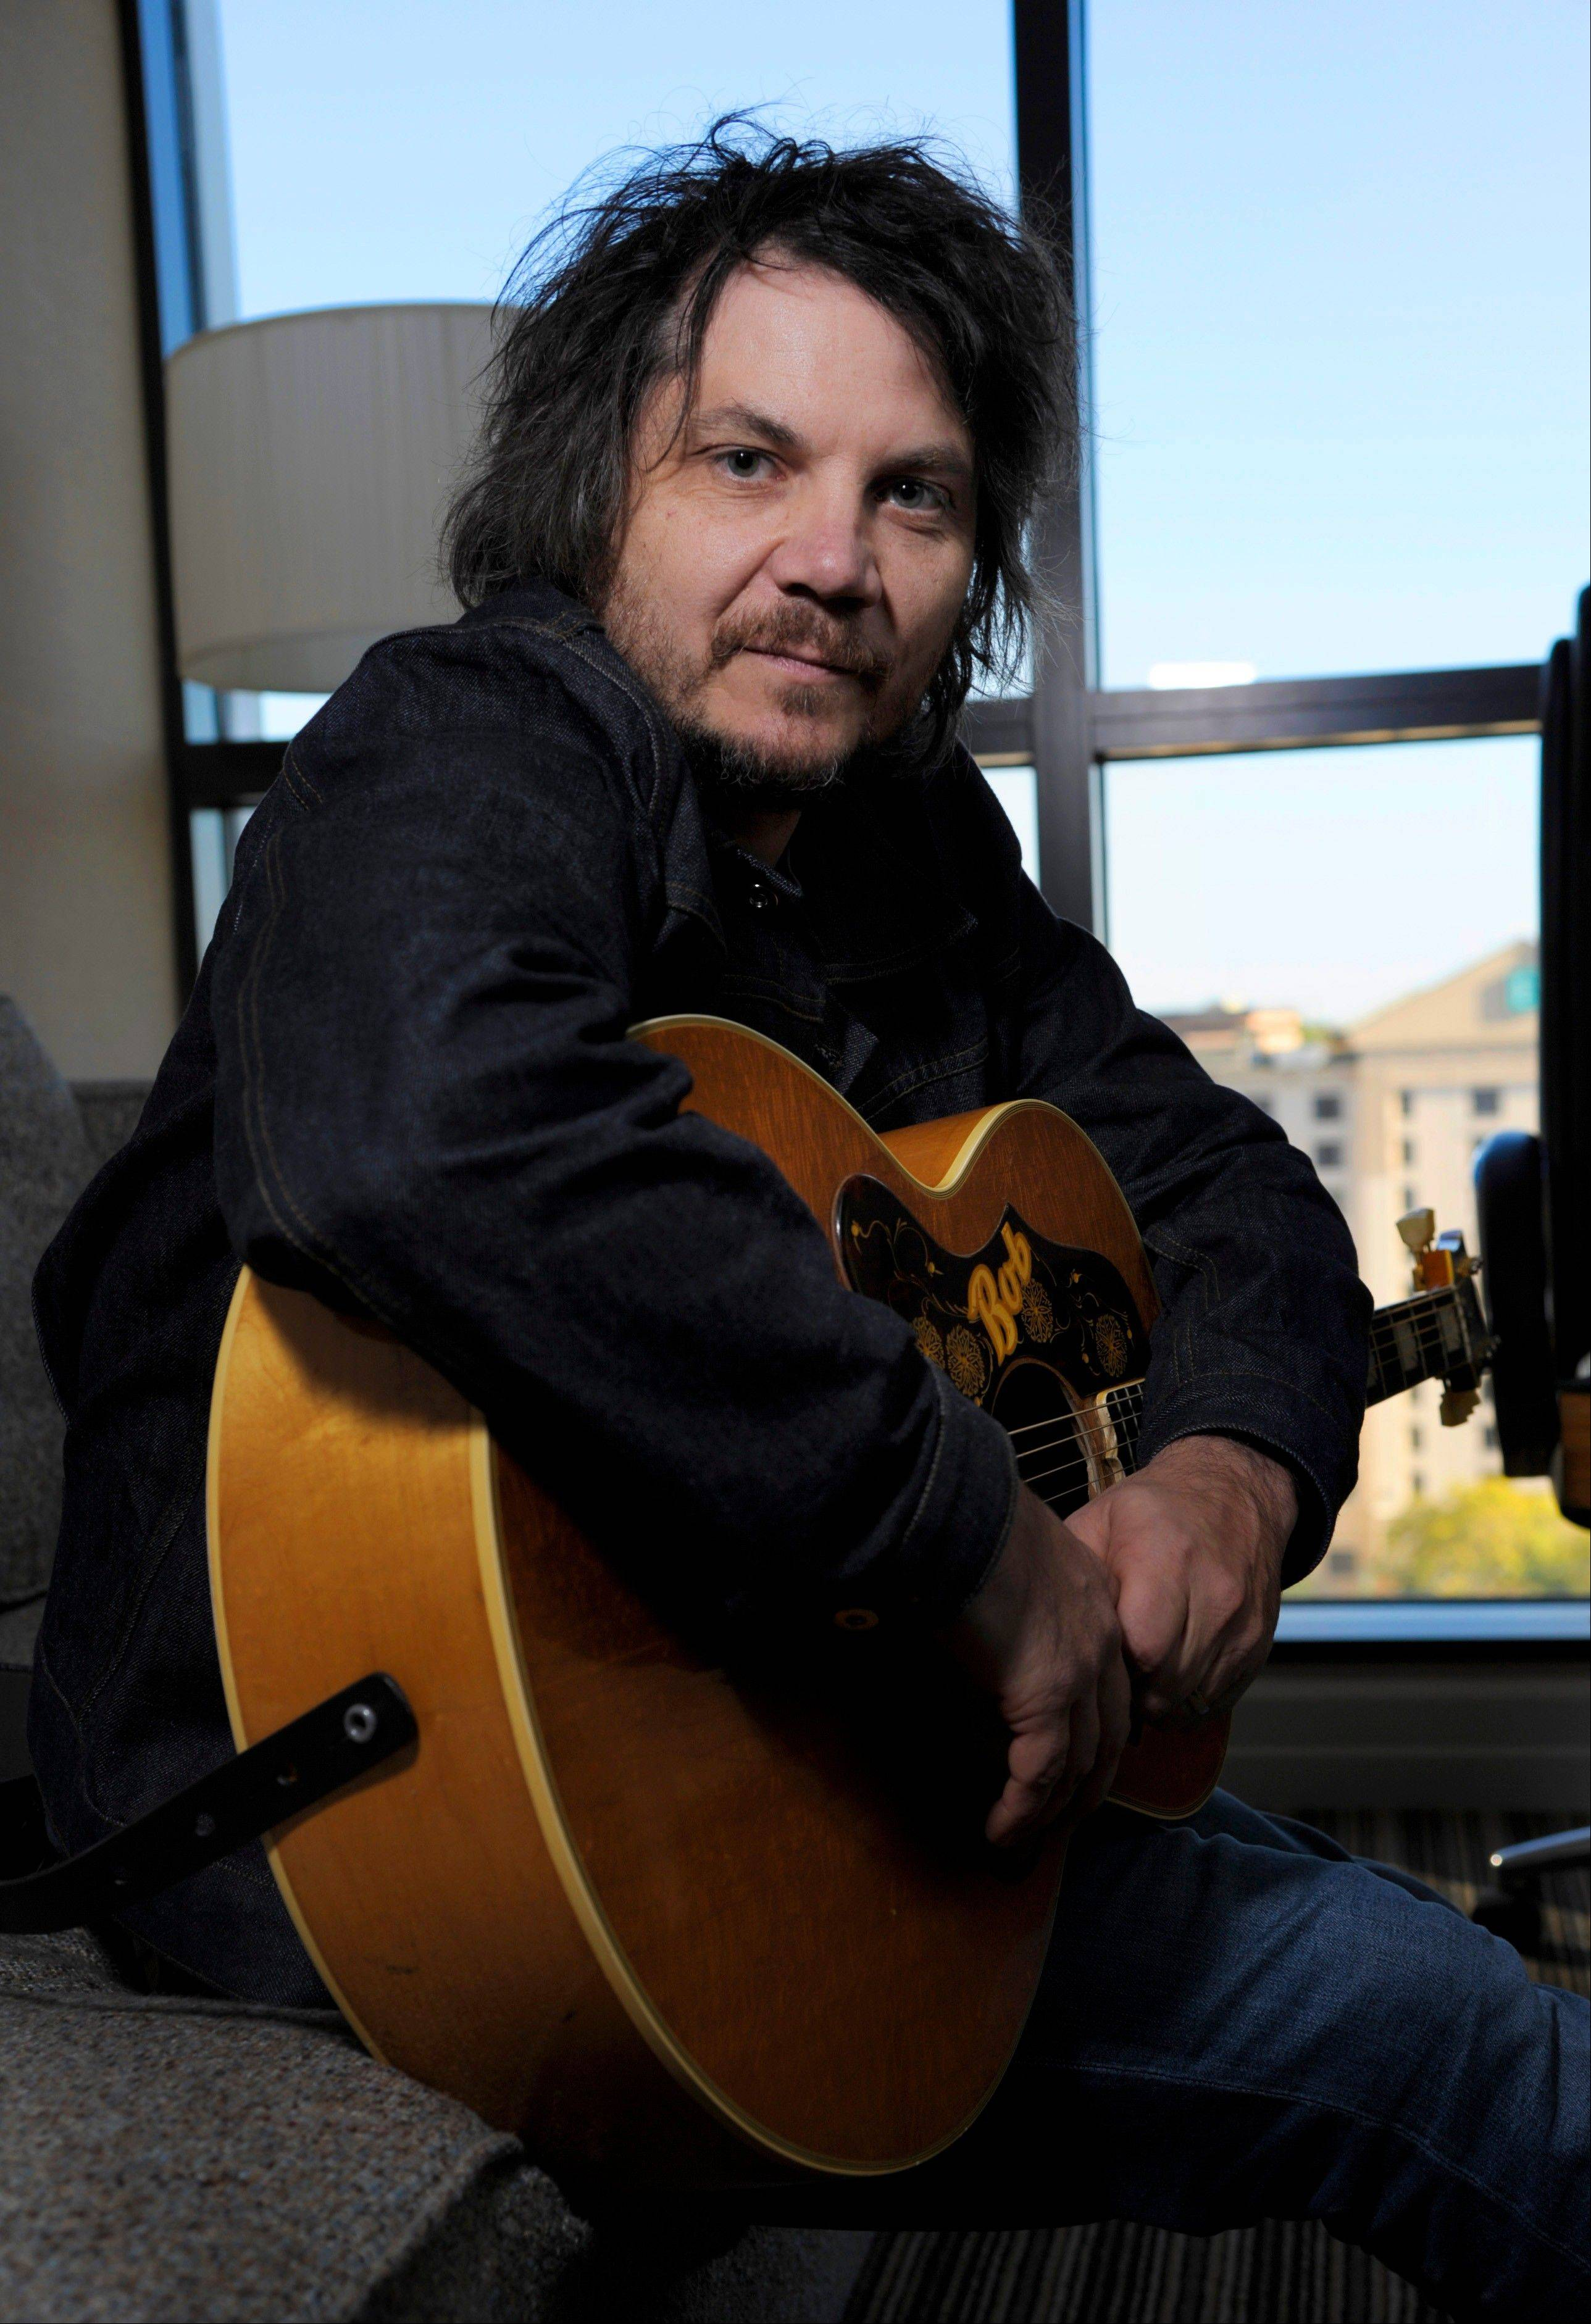 Jeff Tweedy and his band, Wilco, headline Fifth Third Bank Ballpark in Geneva on Sunday, July 8.